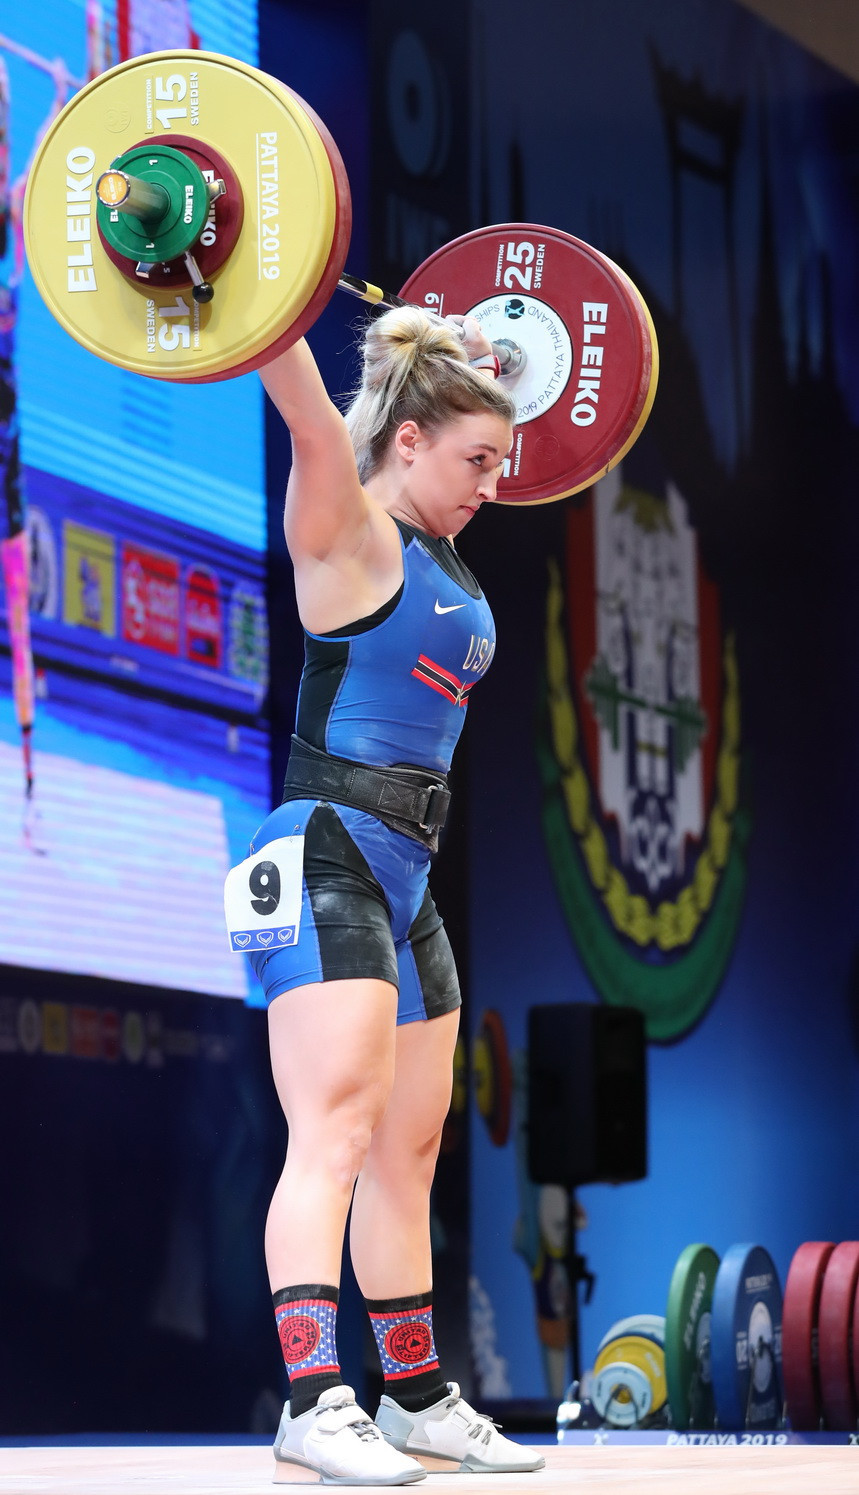 The 20-year-old is the youngest American woman to become a world champion in weightlifting ©IWF